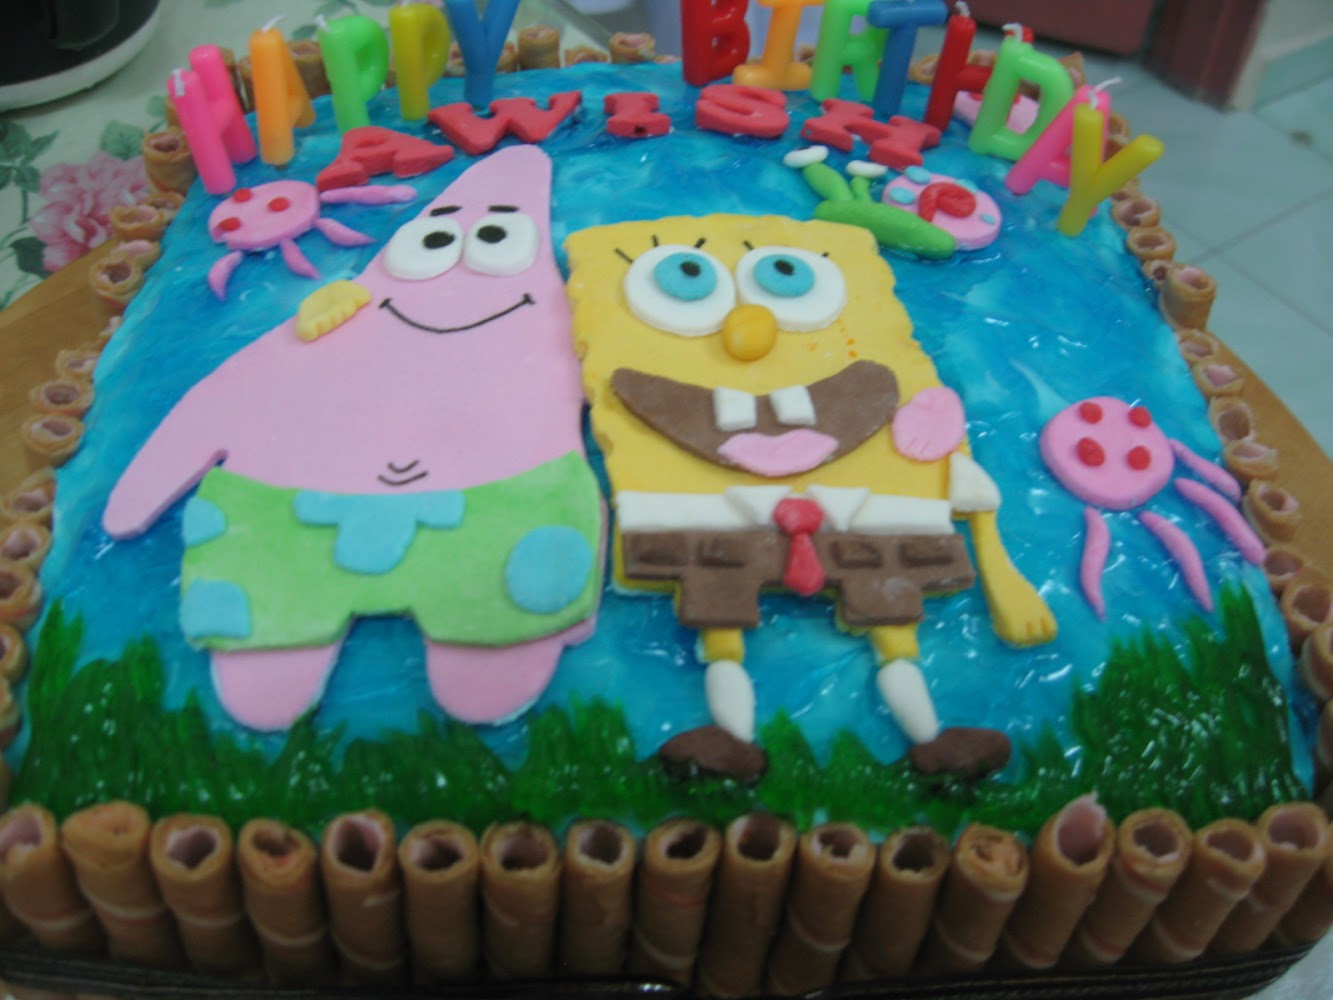 Birthday Cake - Spongebob